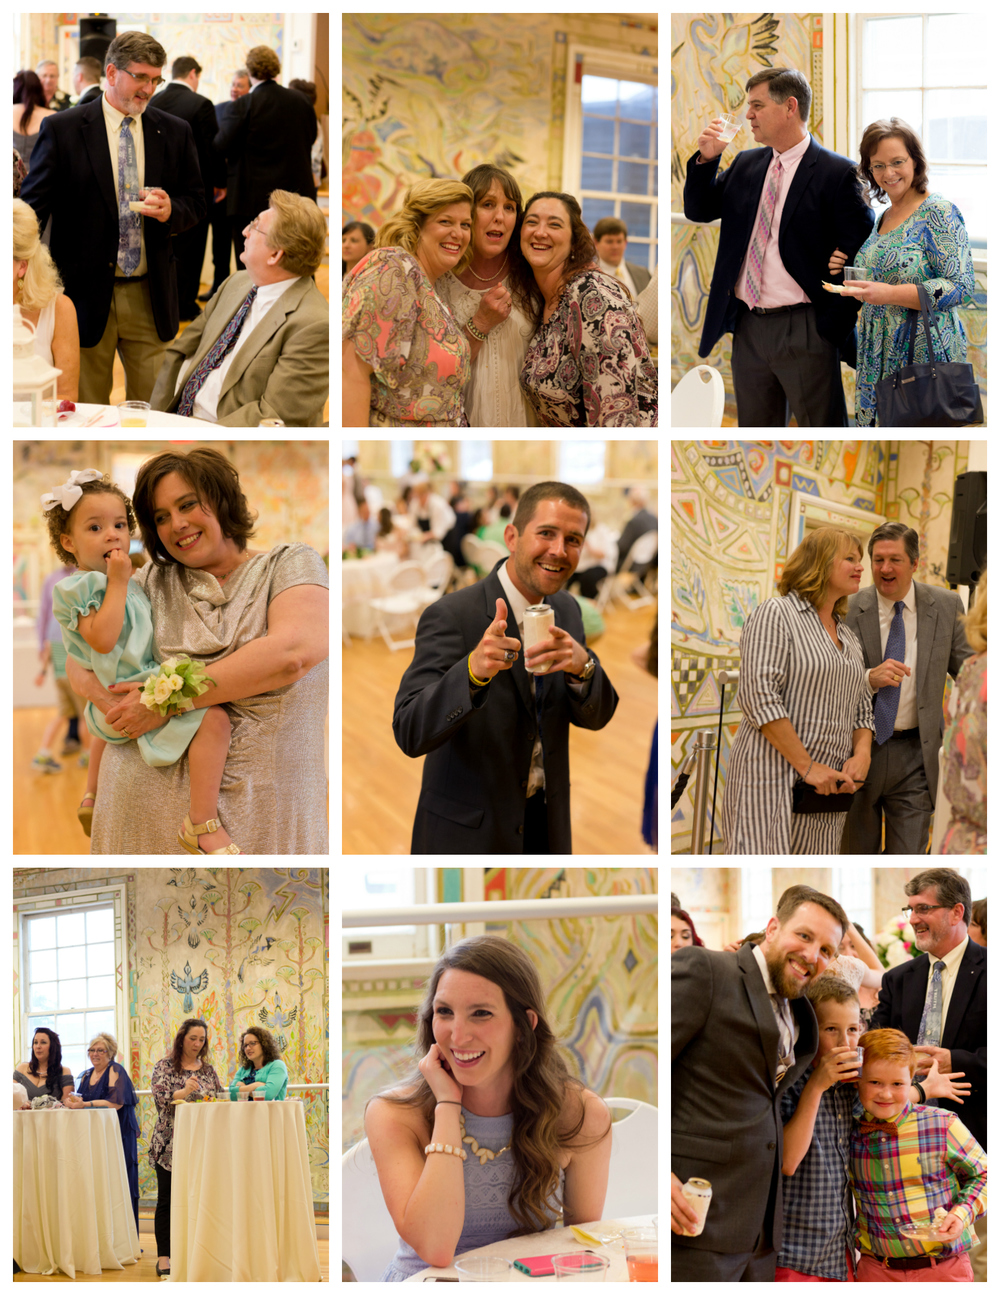 wedding reception guests at Ocean Springs Community Center